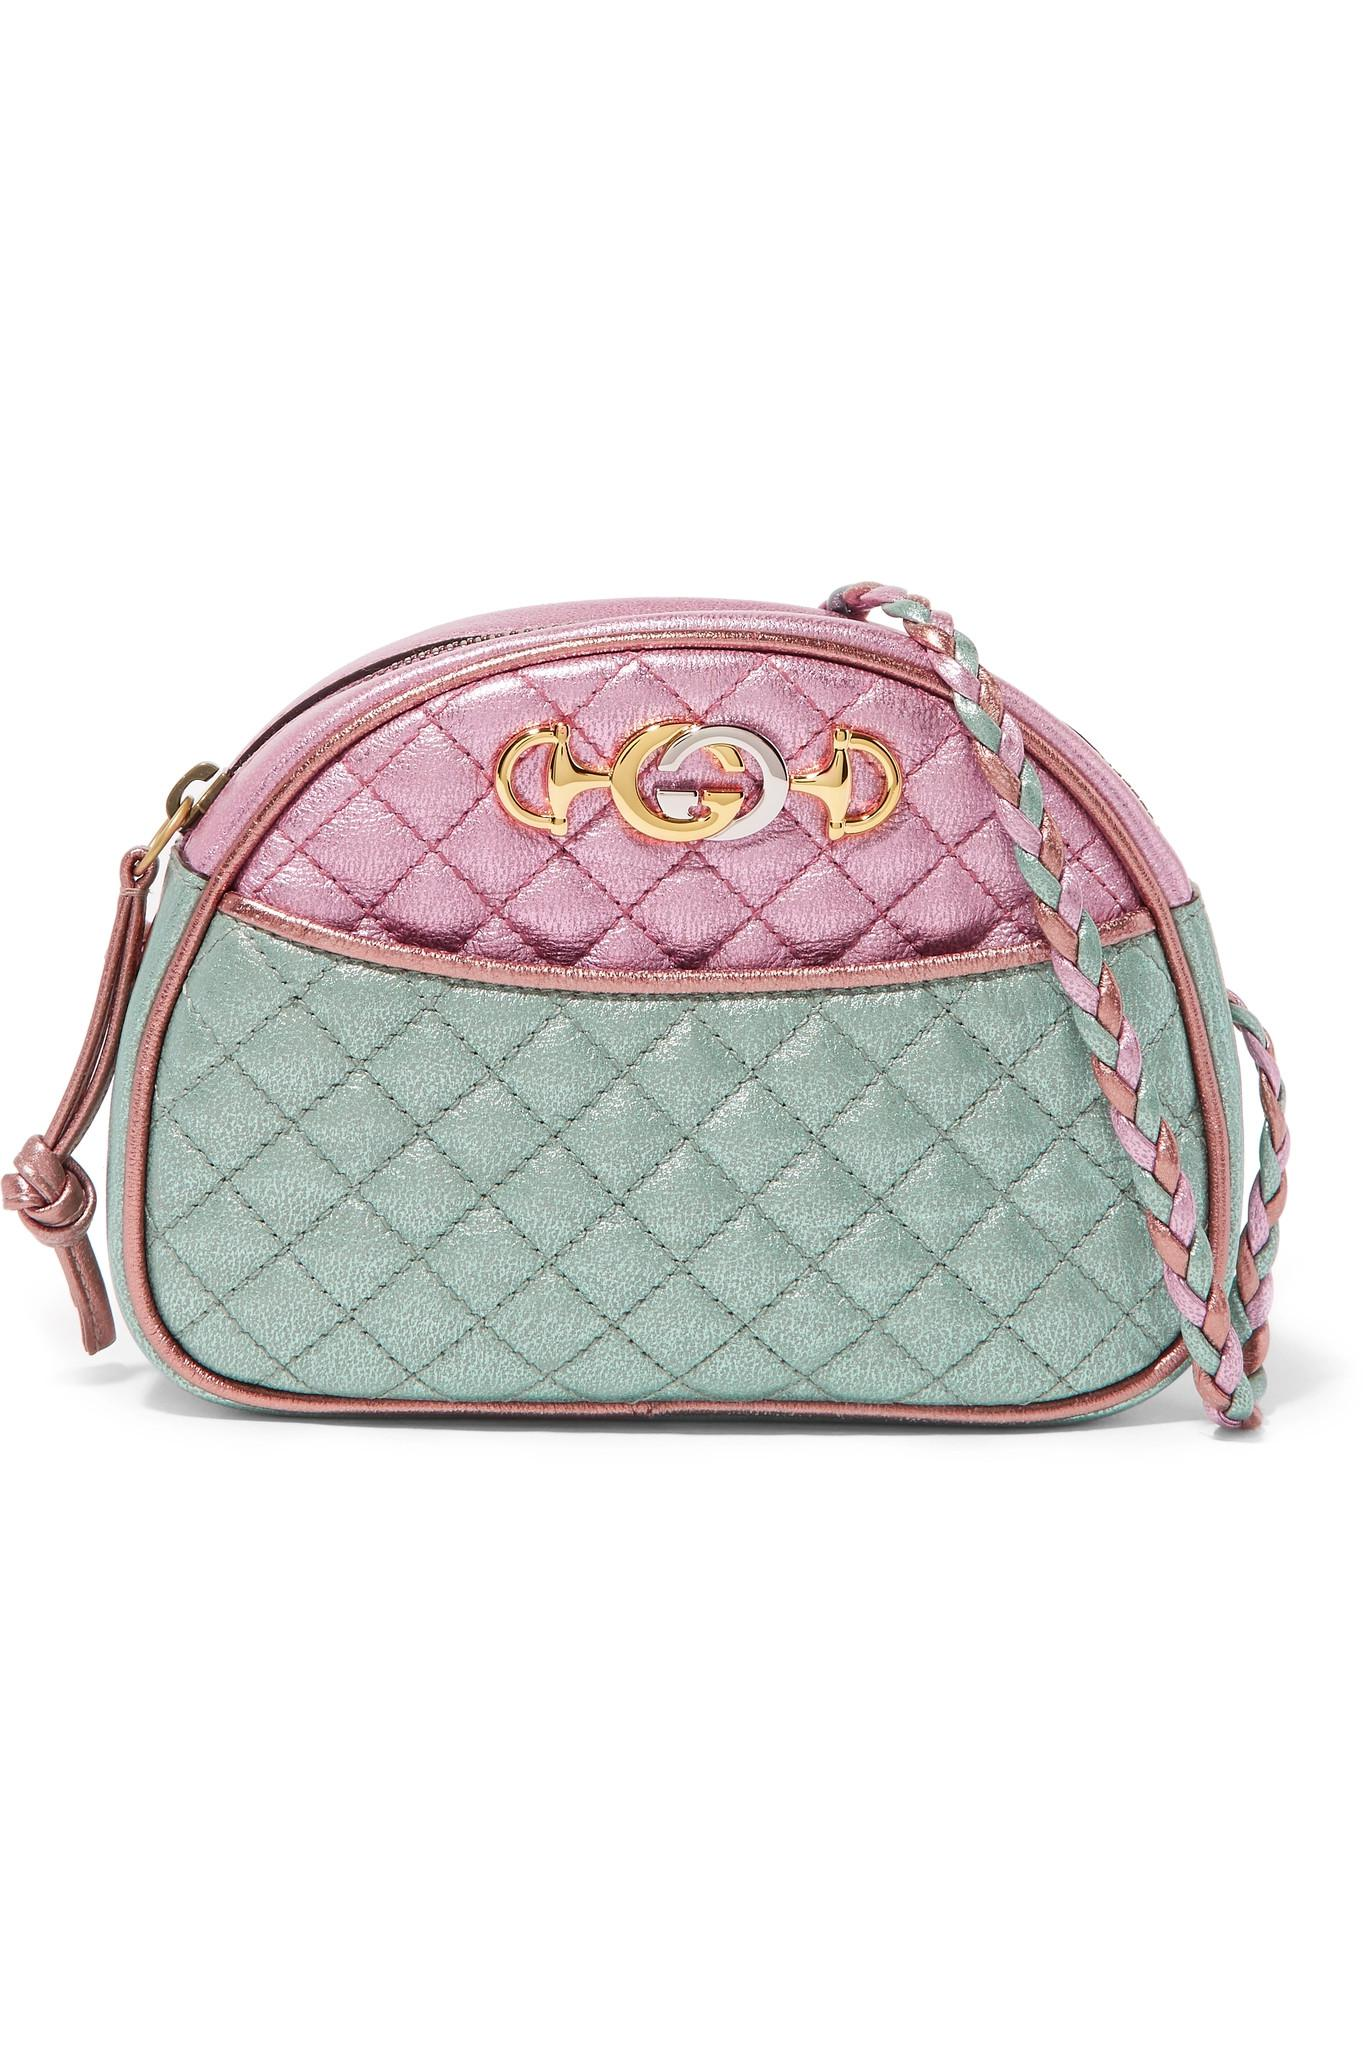 ccc0d5fbcb4 Gucci Pink And Blue Laminated Leather Mini Bag in Pink - Save 13% - Lyst